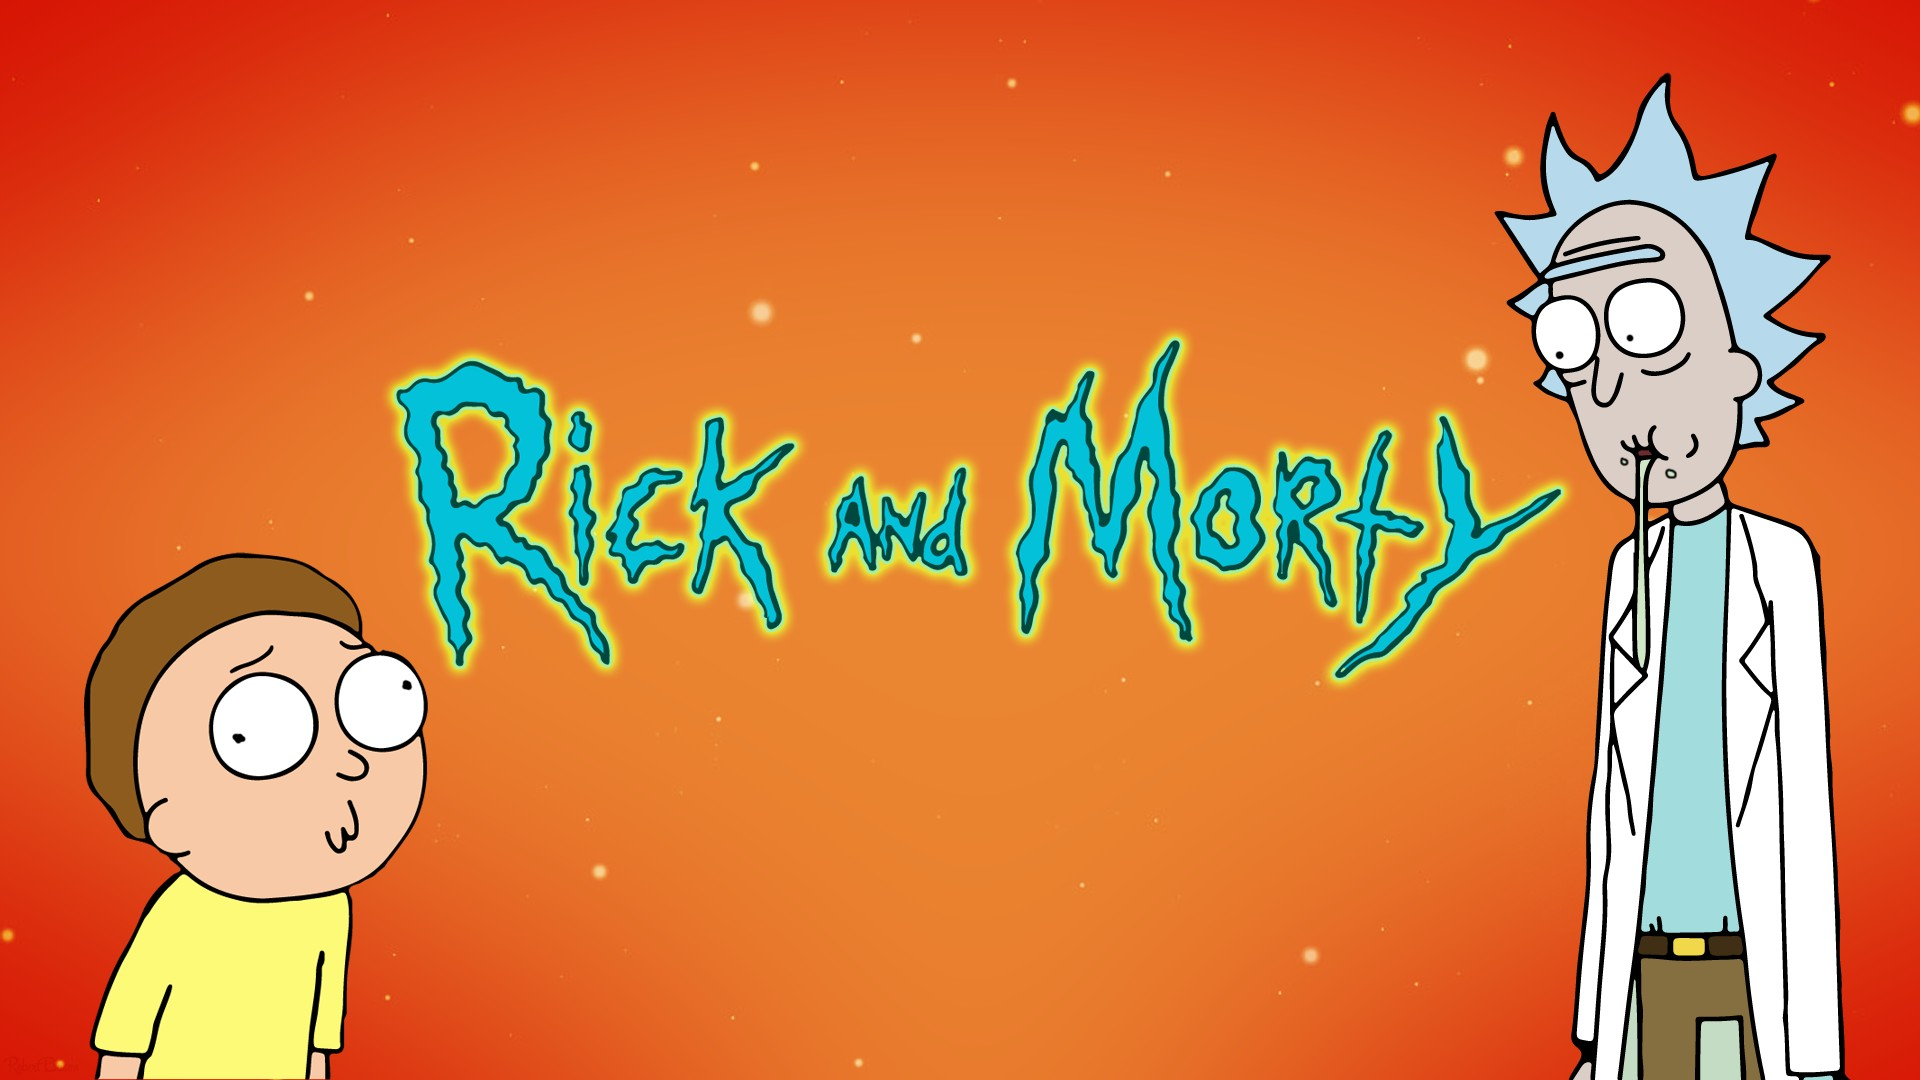 Rick and Morty wallpaper ·① Download free HD wallpapers of Rick and